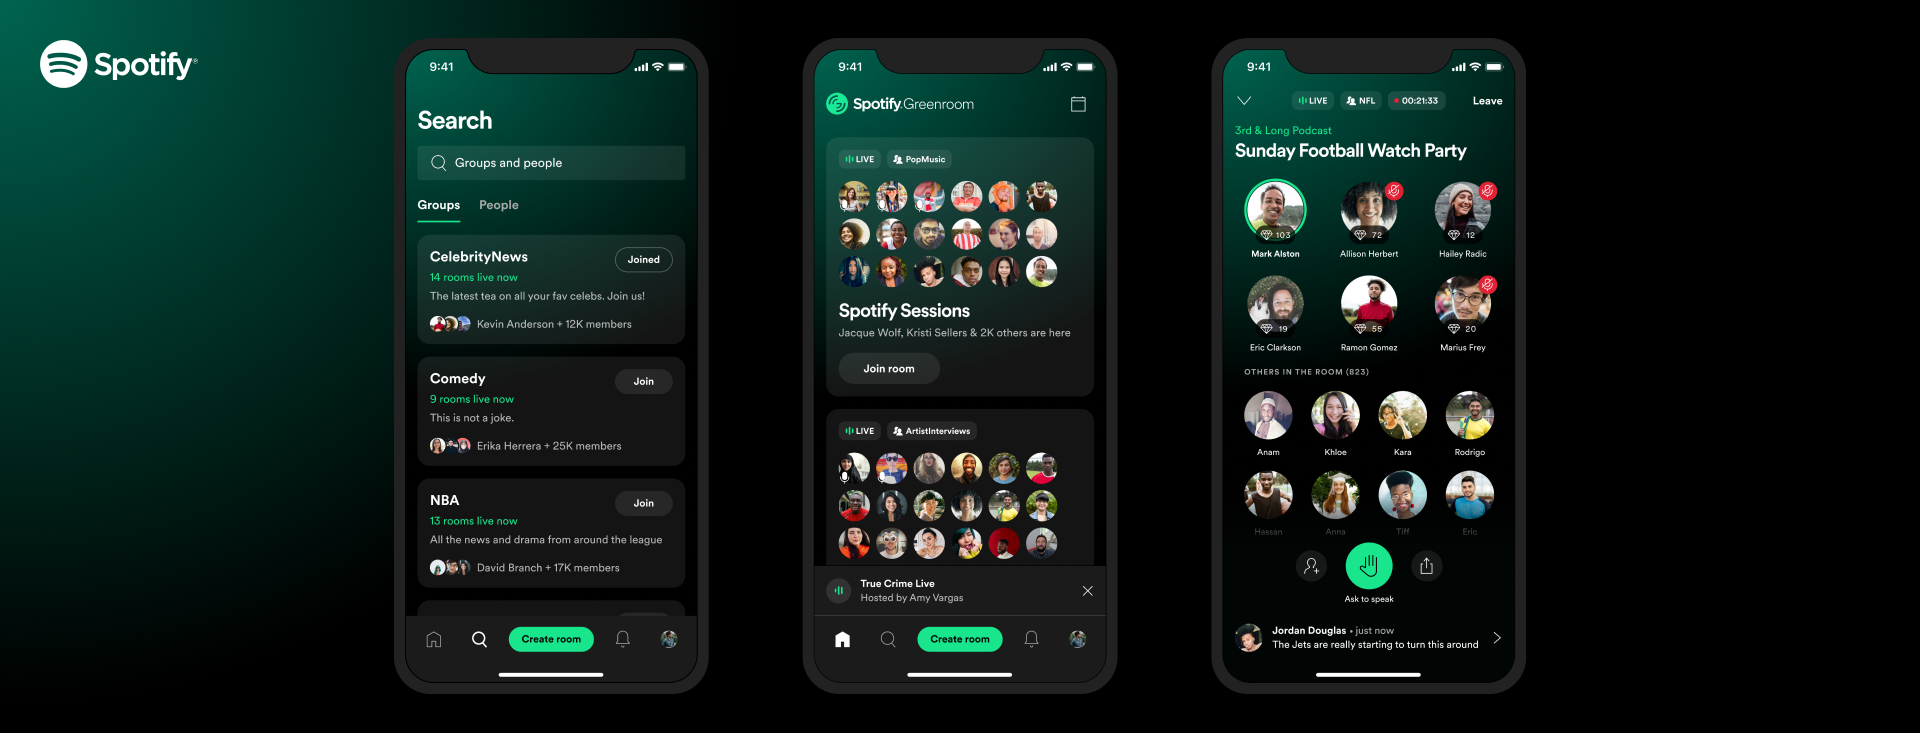 Spotify Launches Its Clubhouse Competitor Called Greenroom